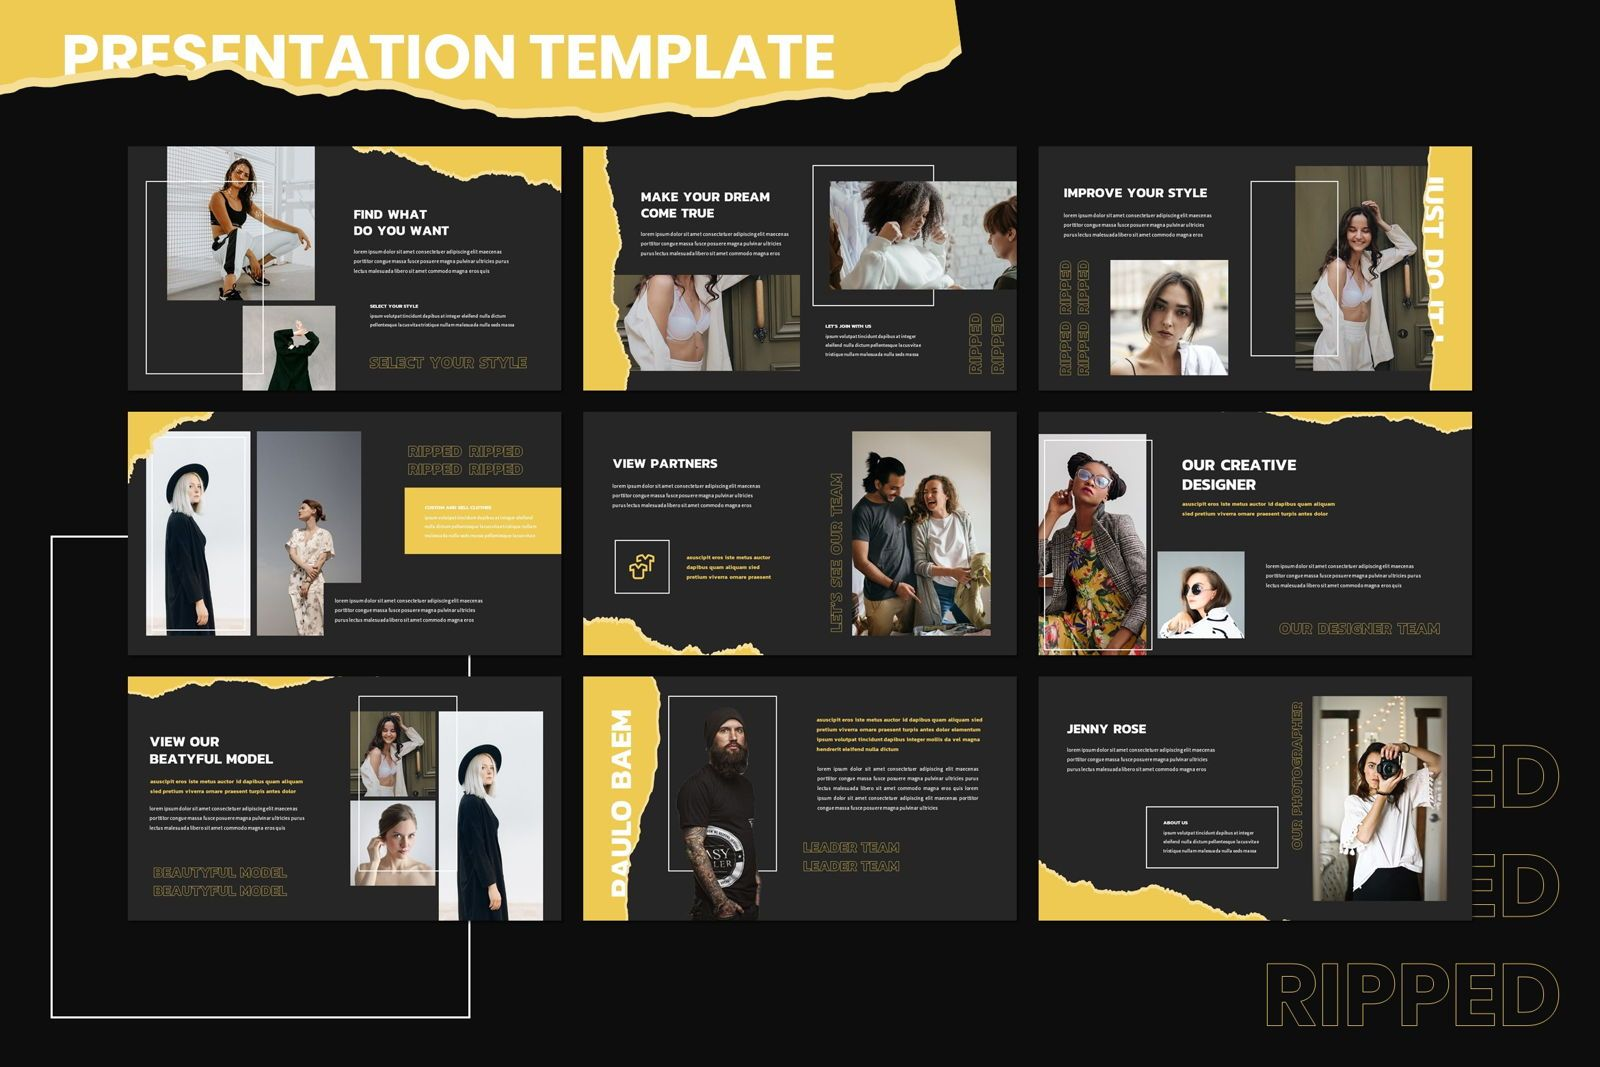 Riped - Powerpoint Template, Slide 3, 07996, Presentation Templates — PoweredTemplate.com